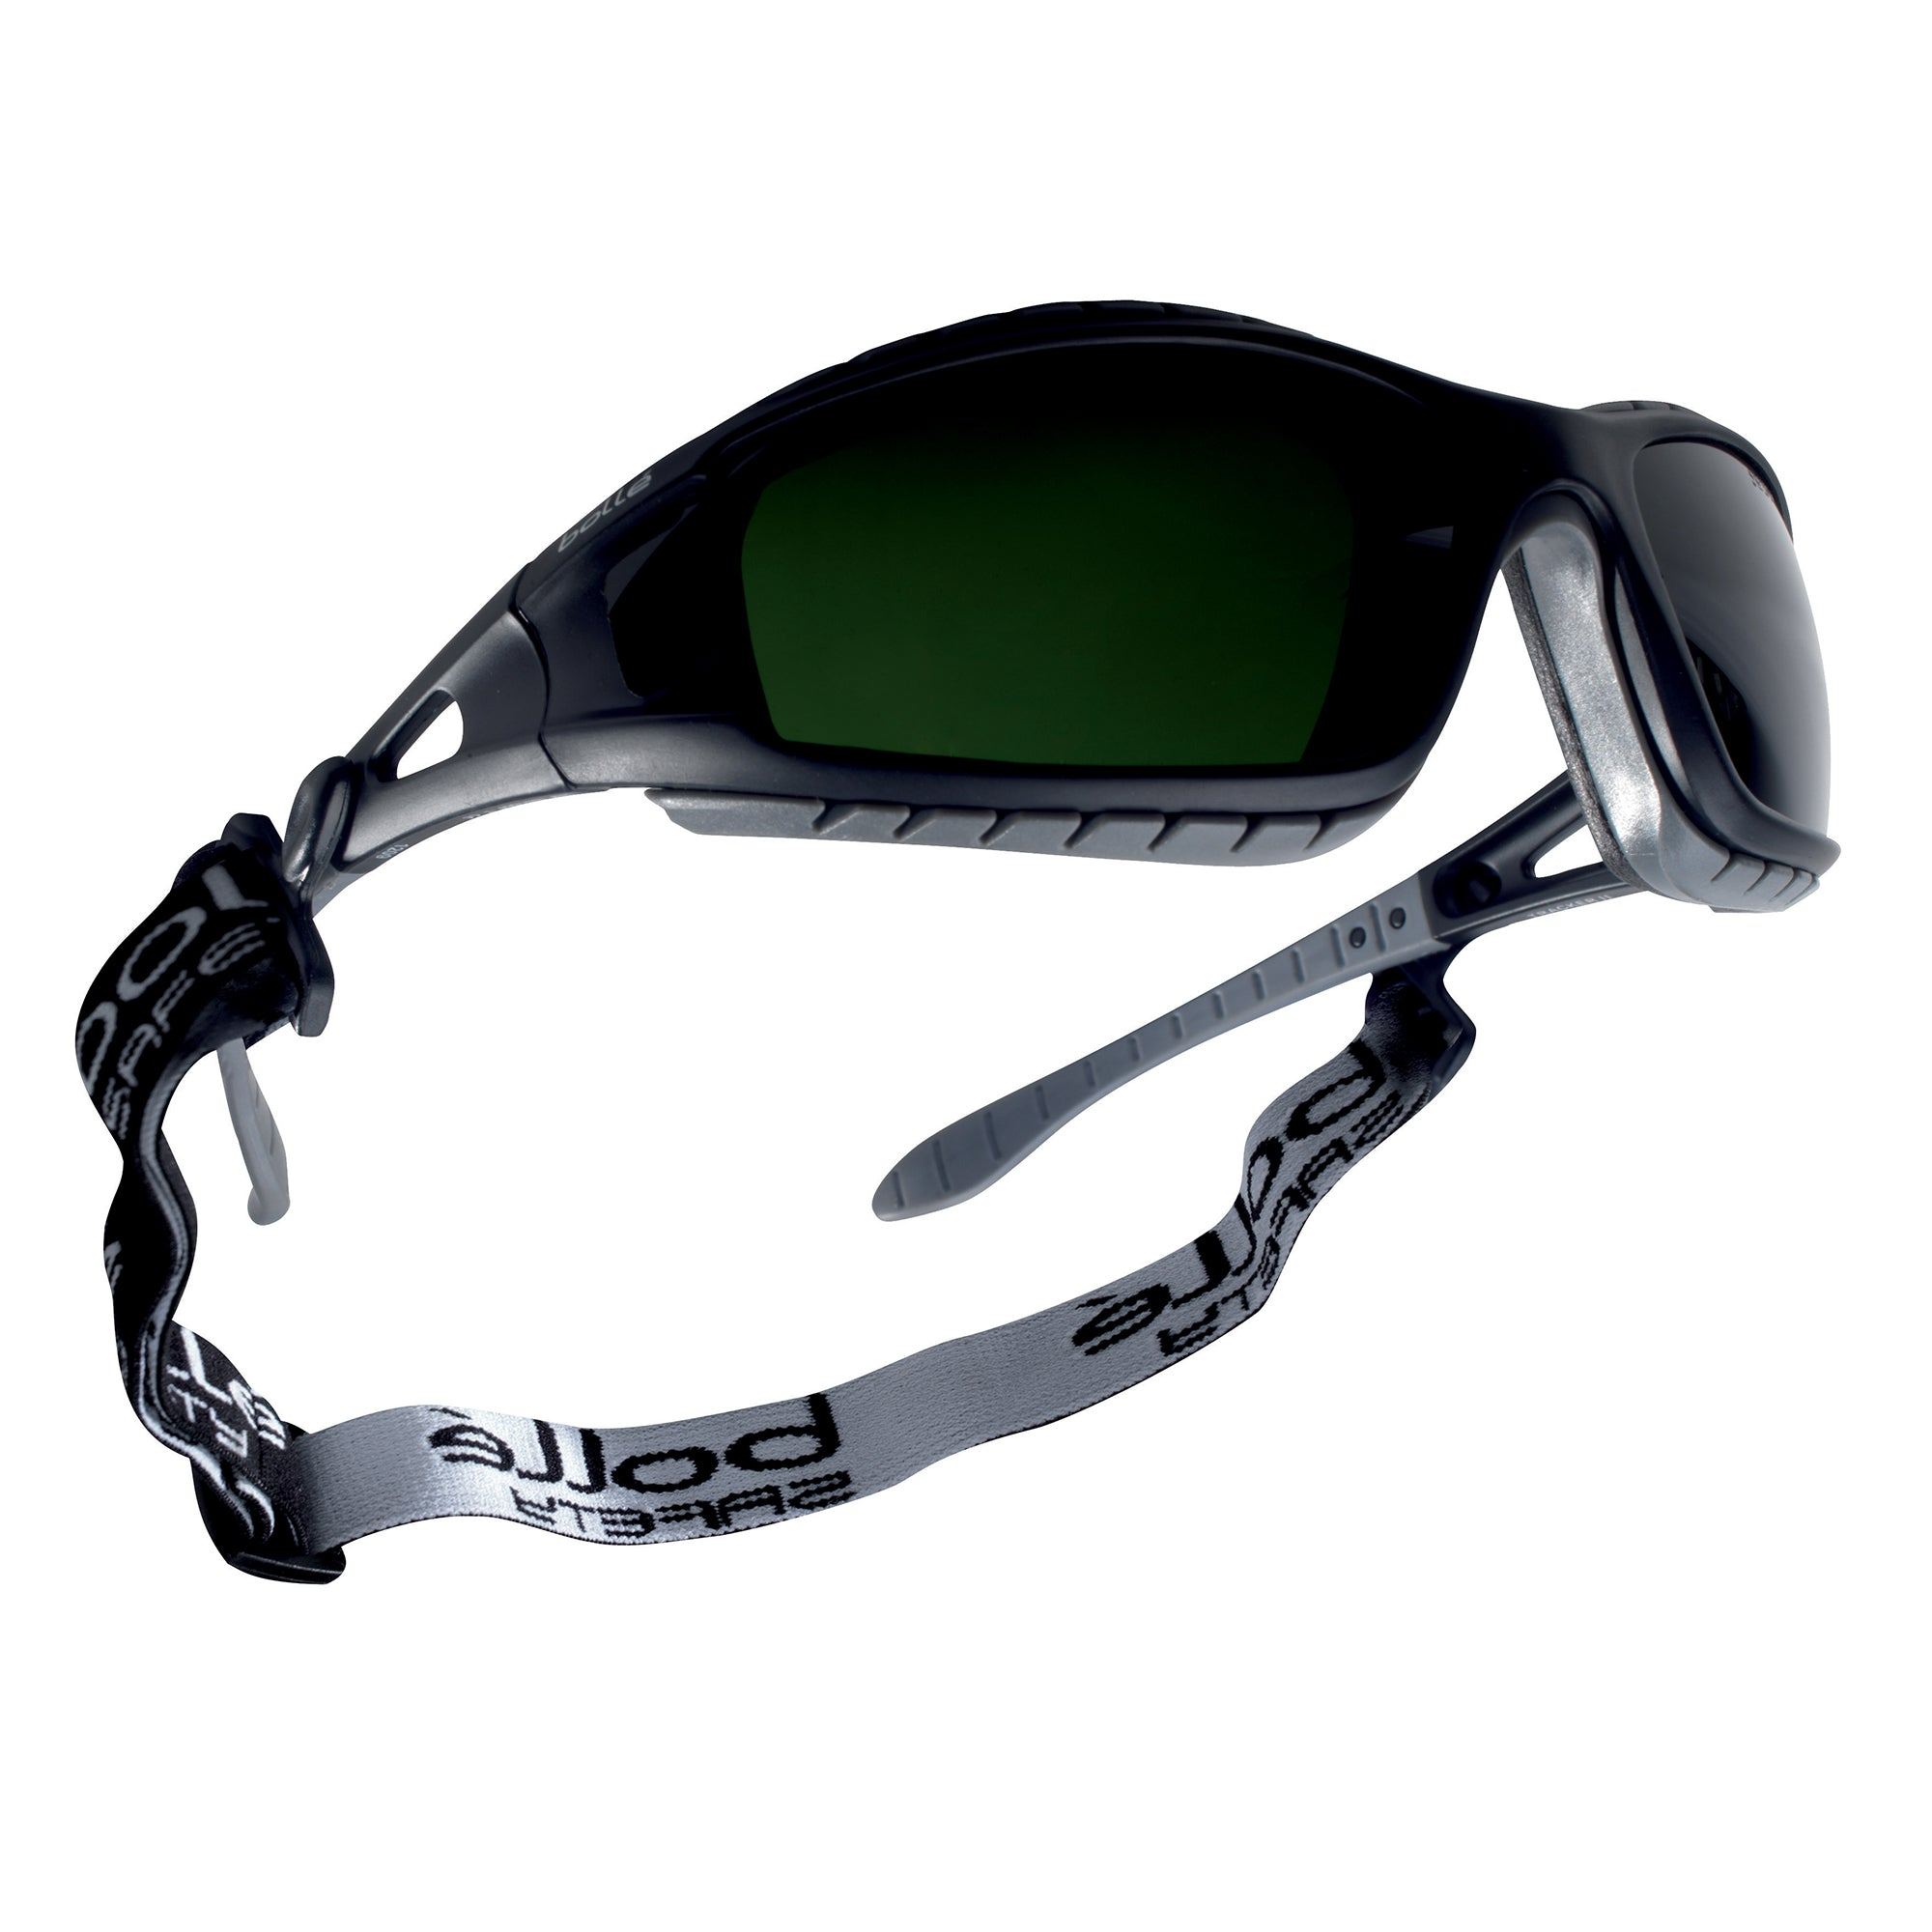 35a8256224d5 Bolle TRACKER TRACWPCC5 Welding PC shade 5 Lens – Alive Safety and ...